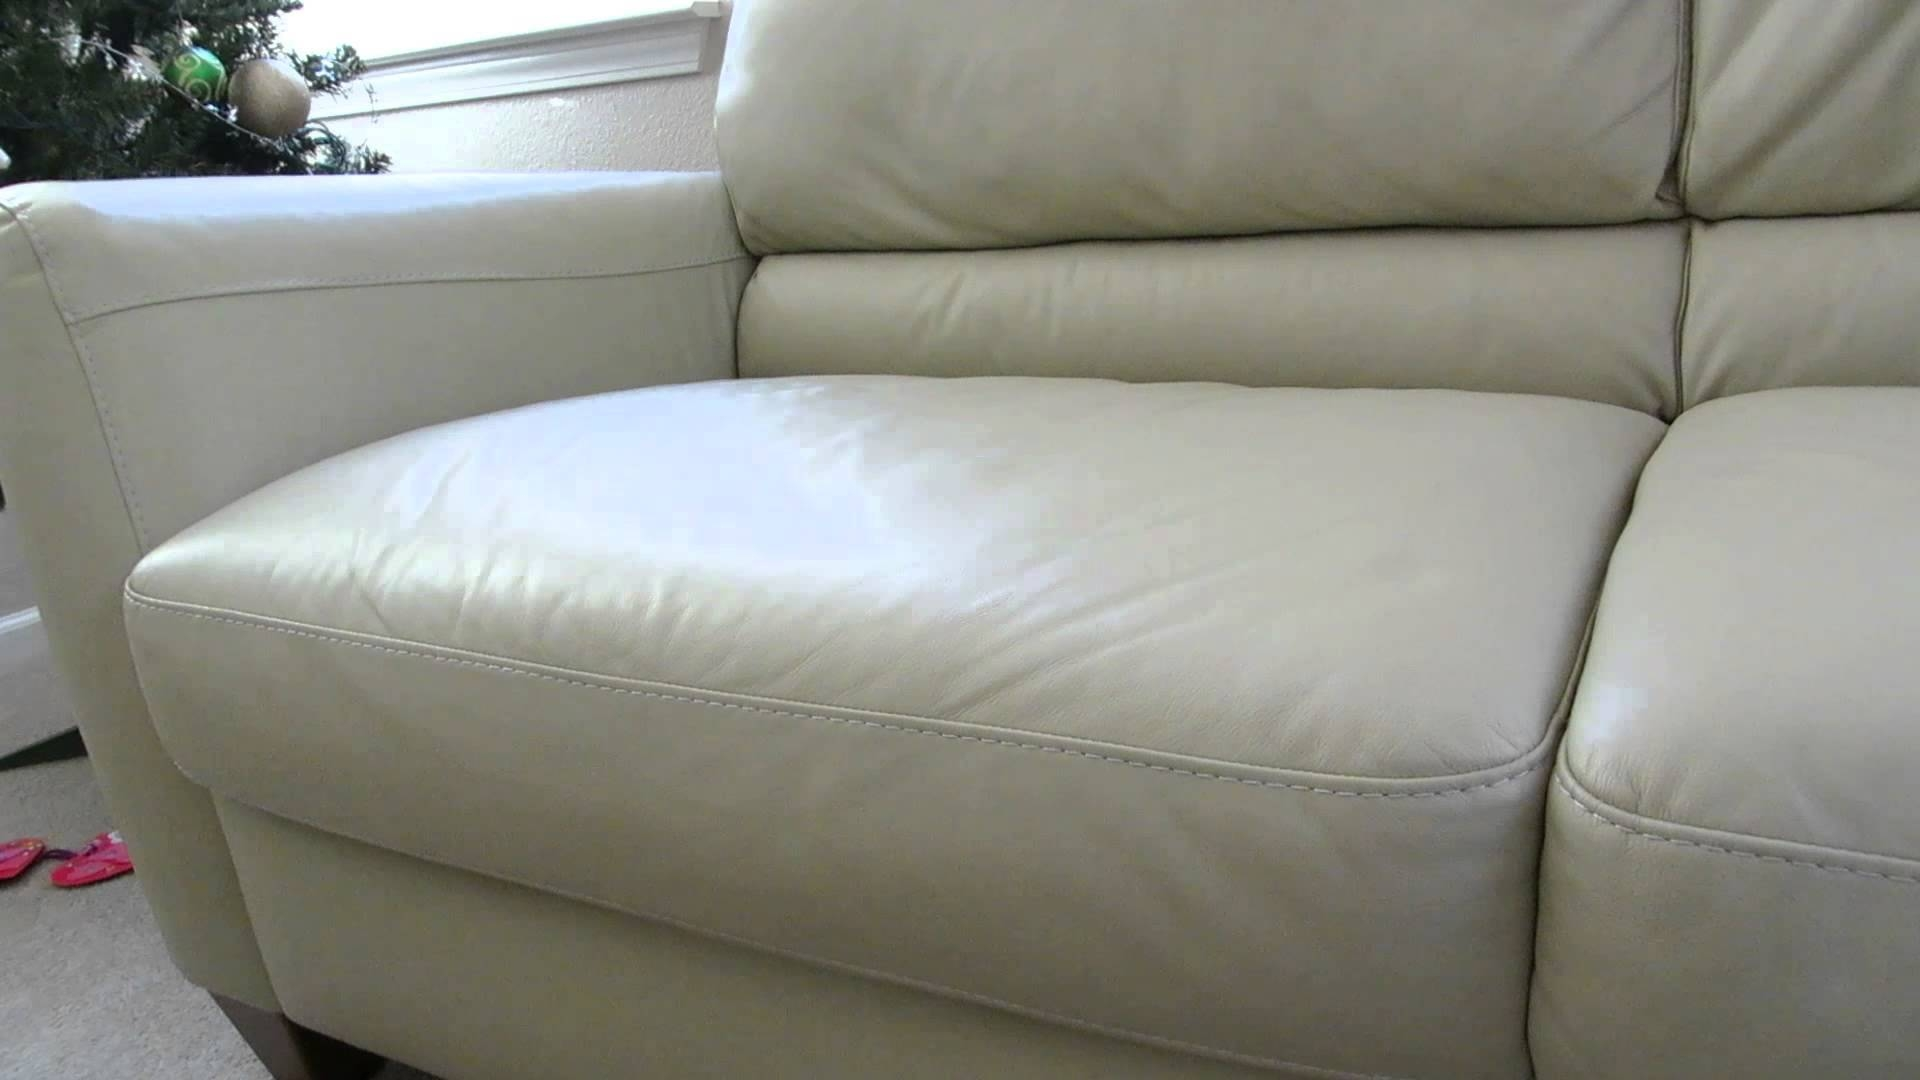 Review Of The Macys Almafi Leather Lime Green Sofa   Youtube For Macys Sofas (Photo 21 of 25)